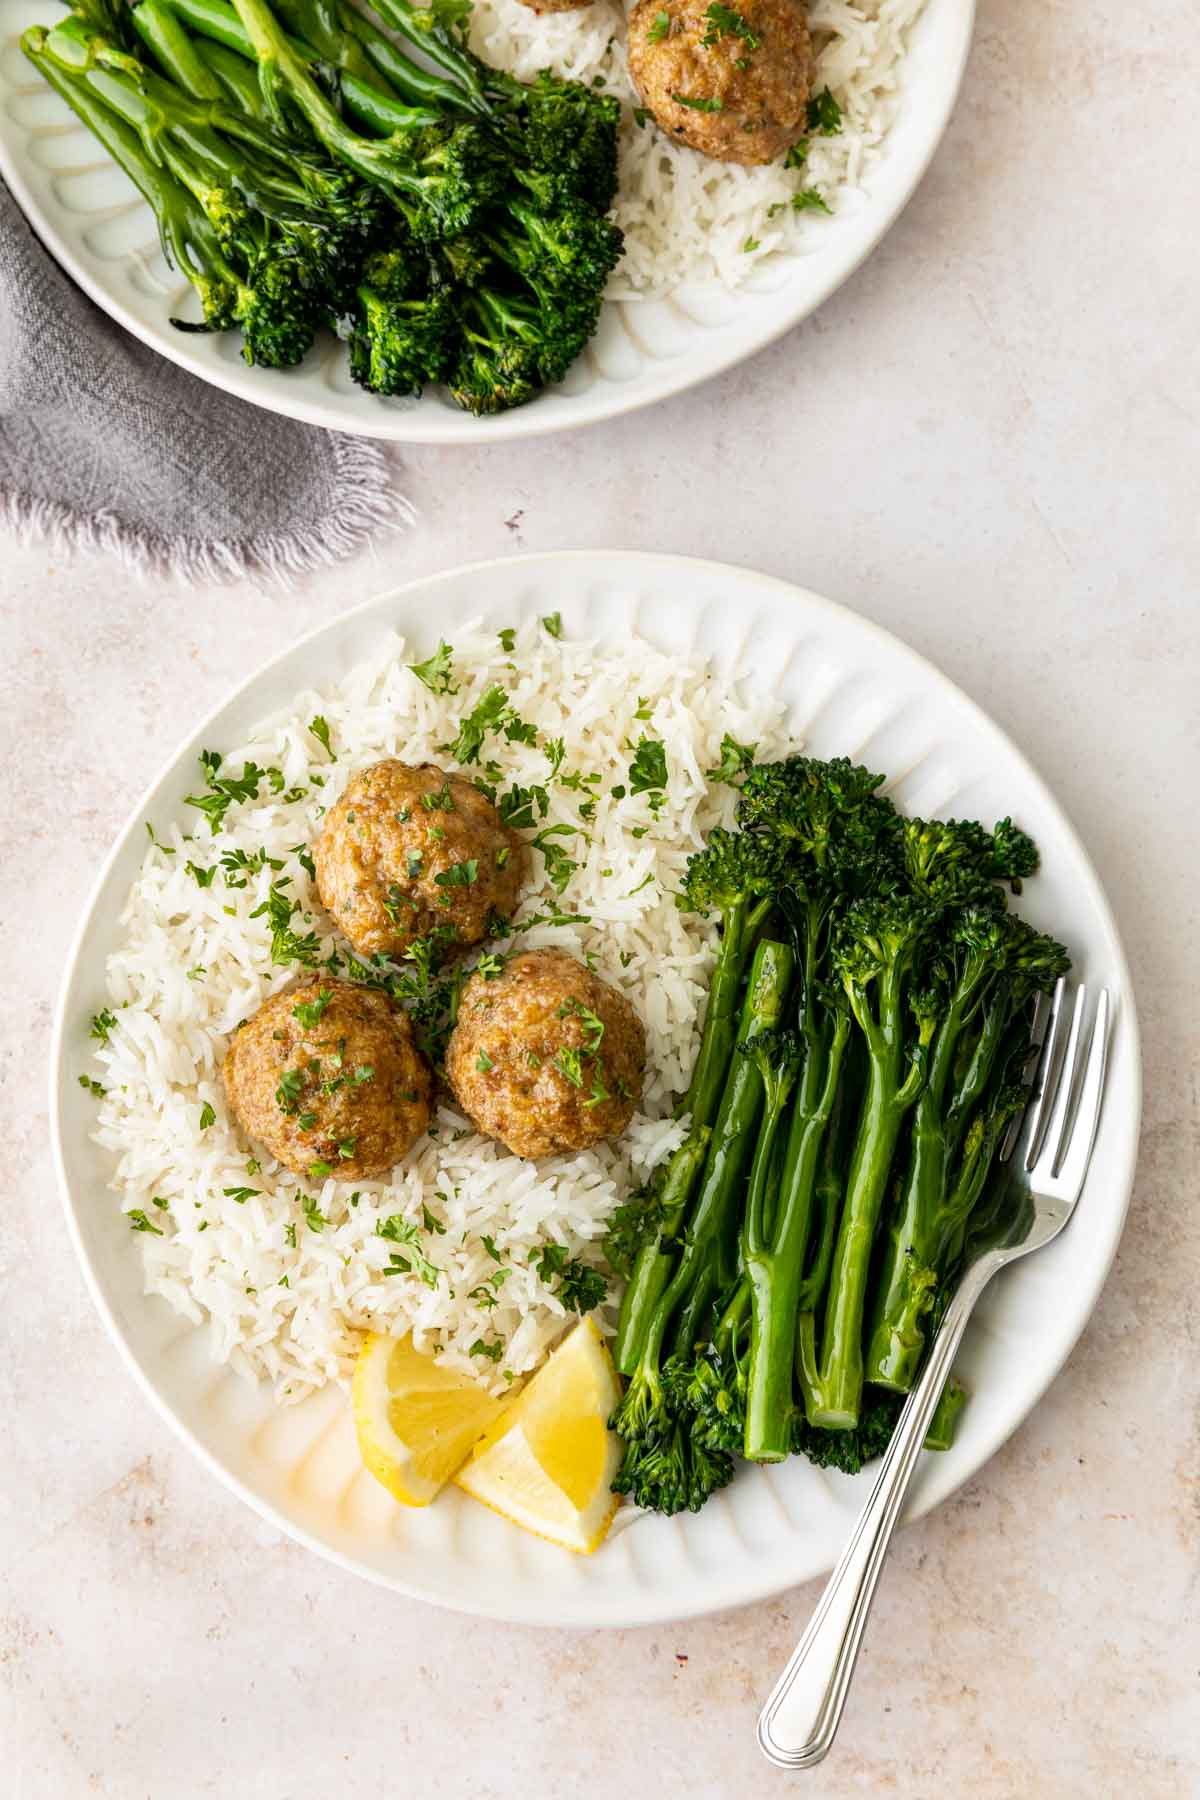 Turkey Meatballs on a plate served with rice and broccolini